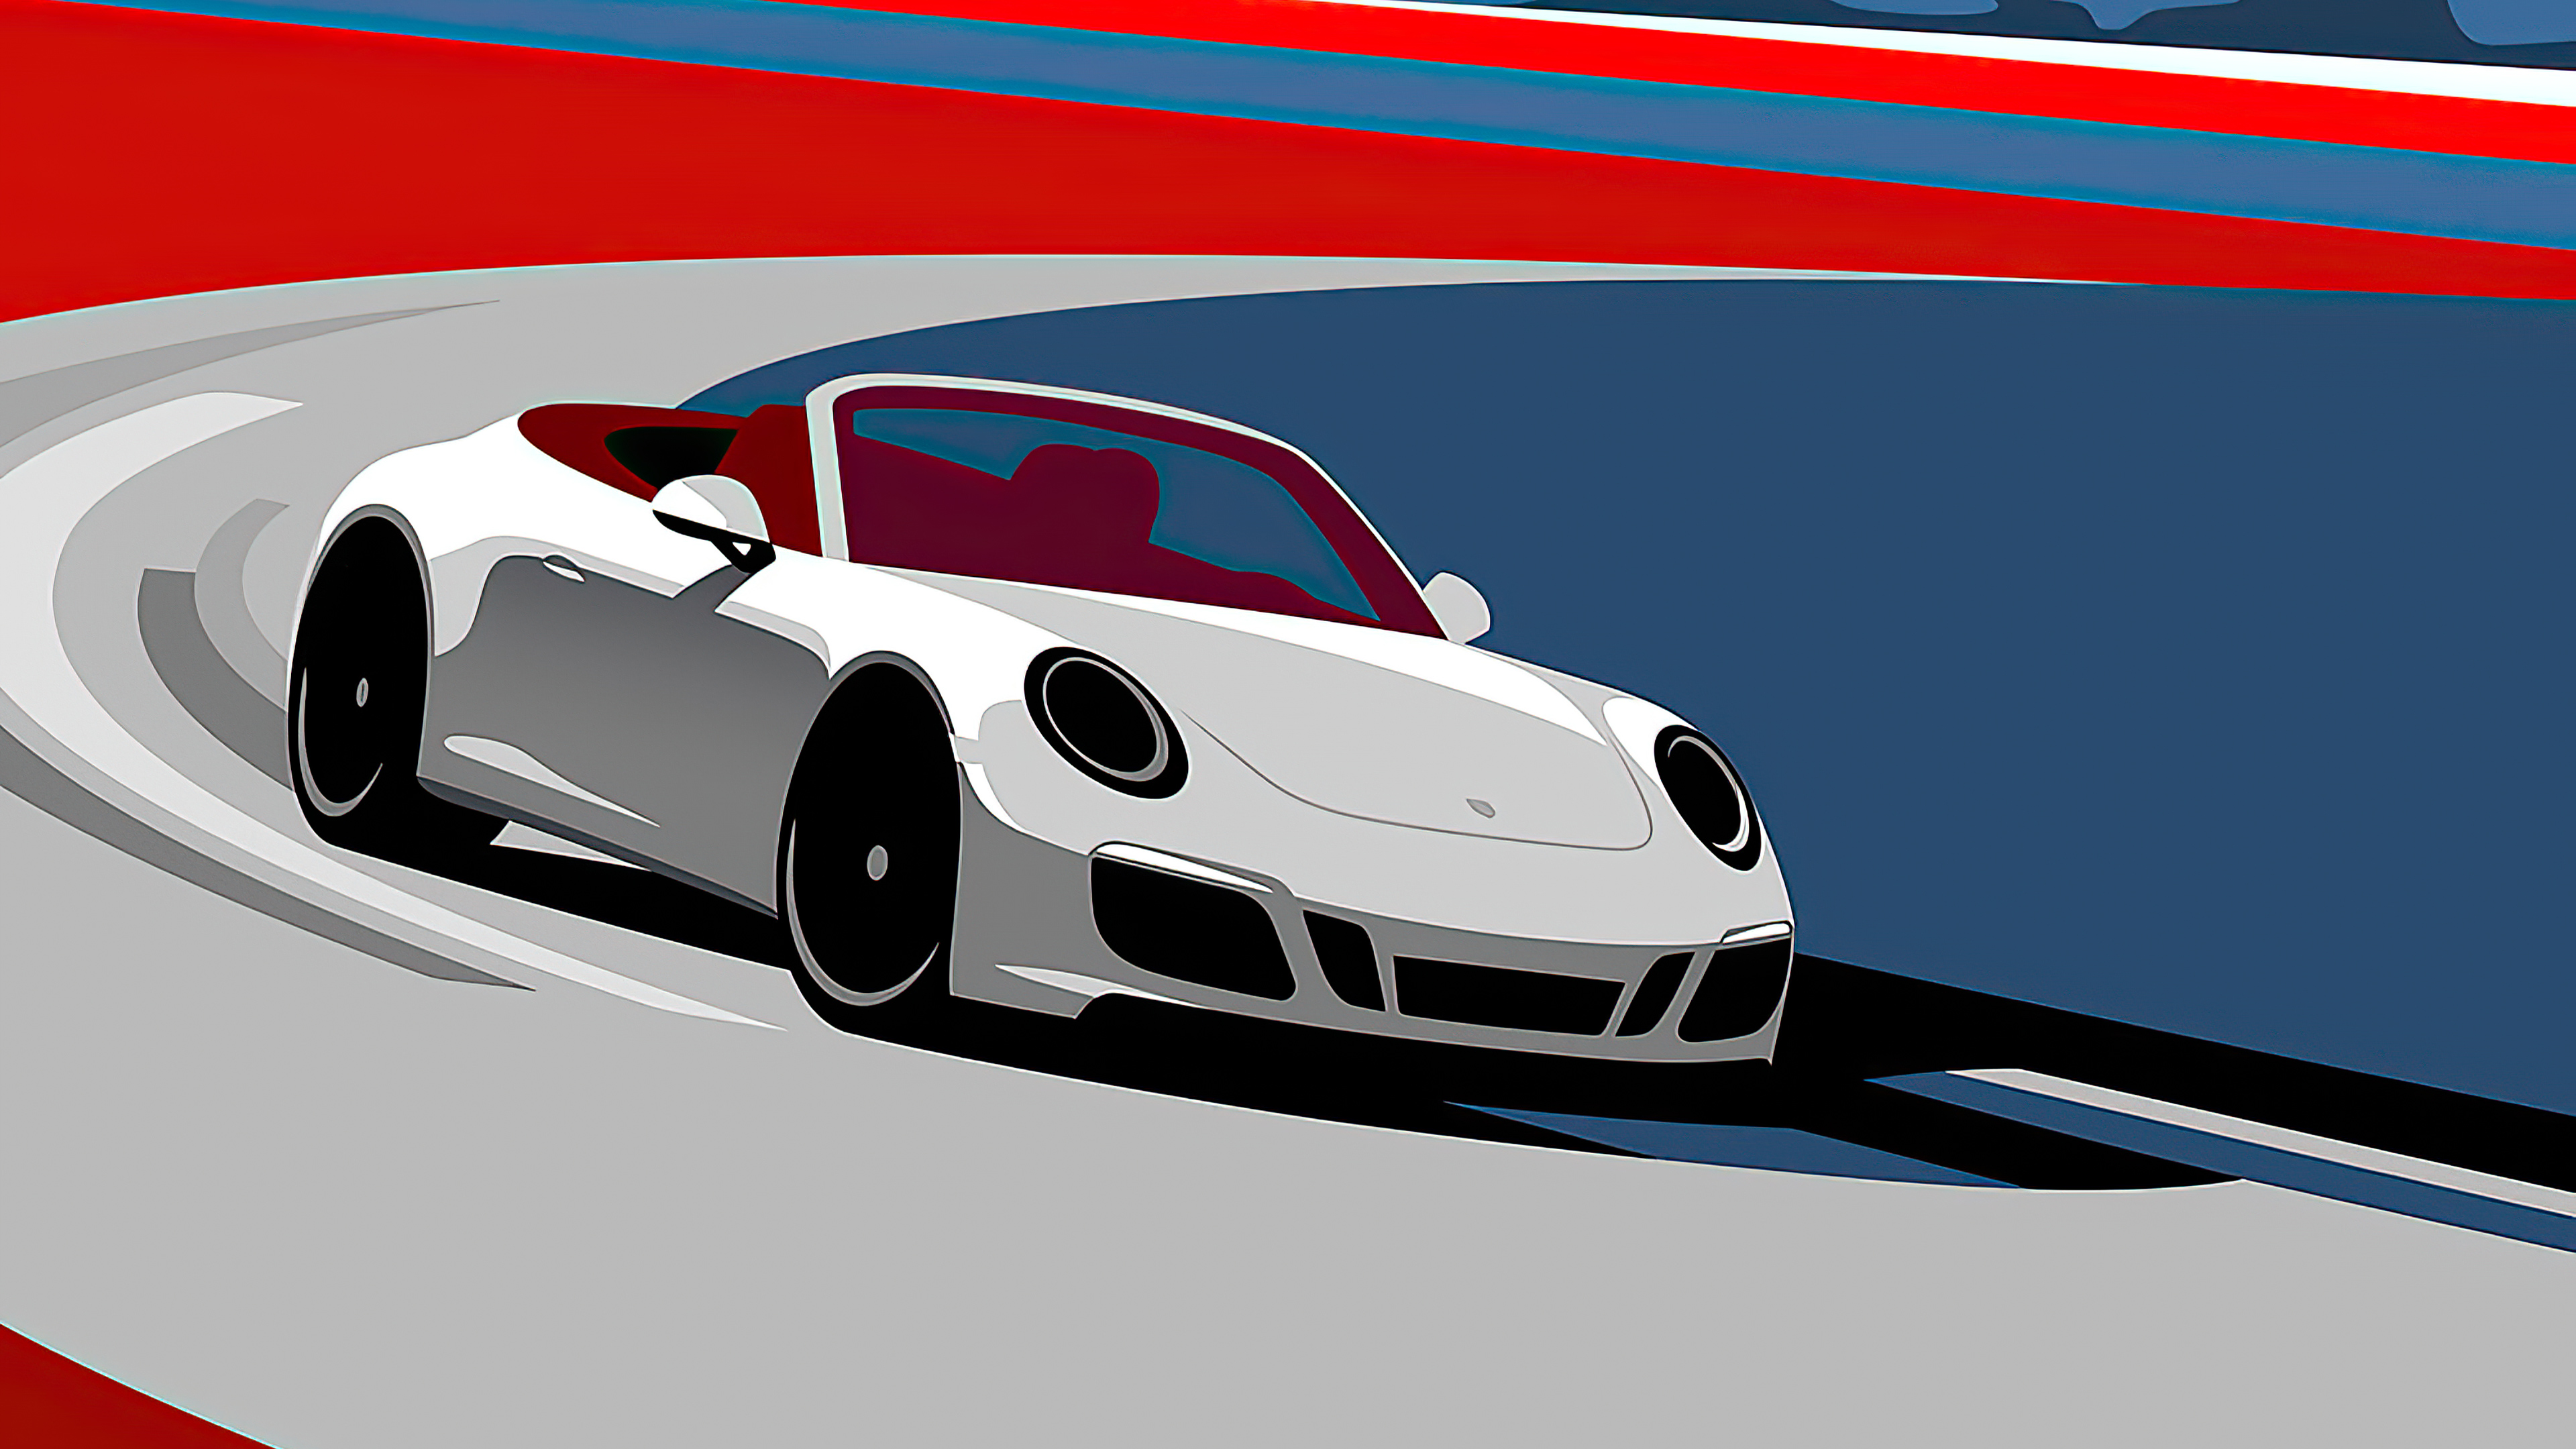 Porsche Artistic Art 4k Hd Cars 4k Wallpapers Images Backgrounds Photos And Pictures